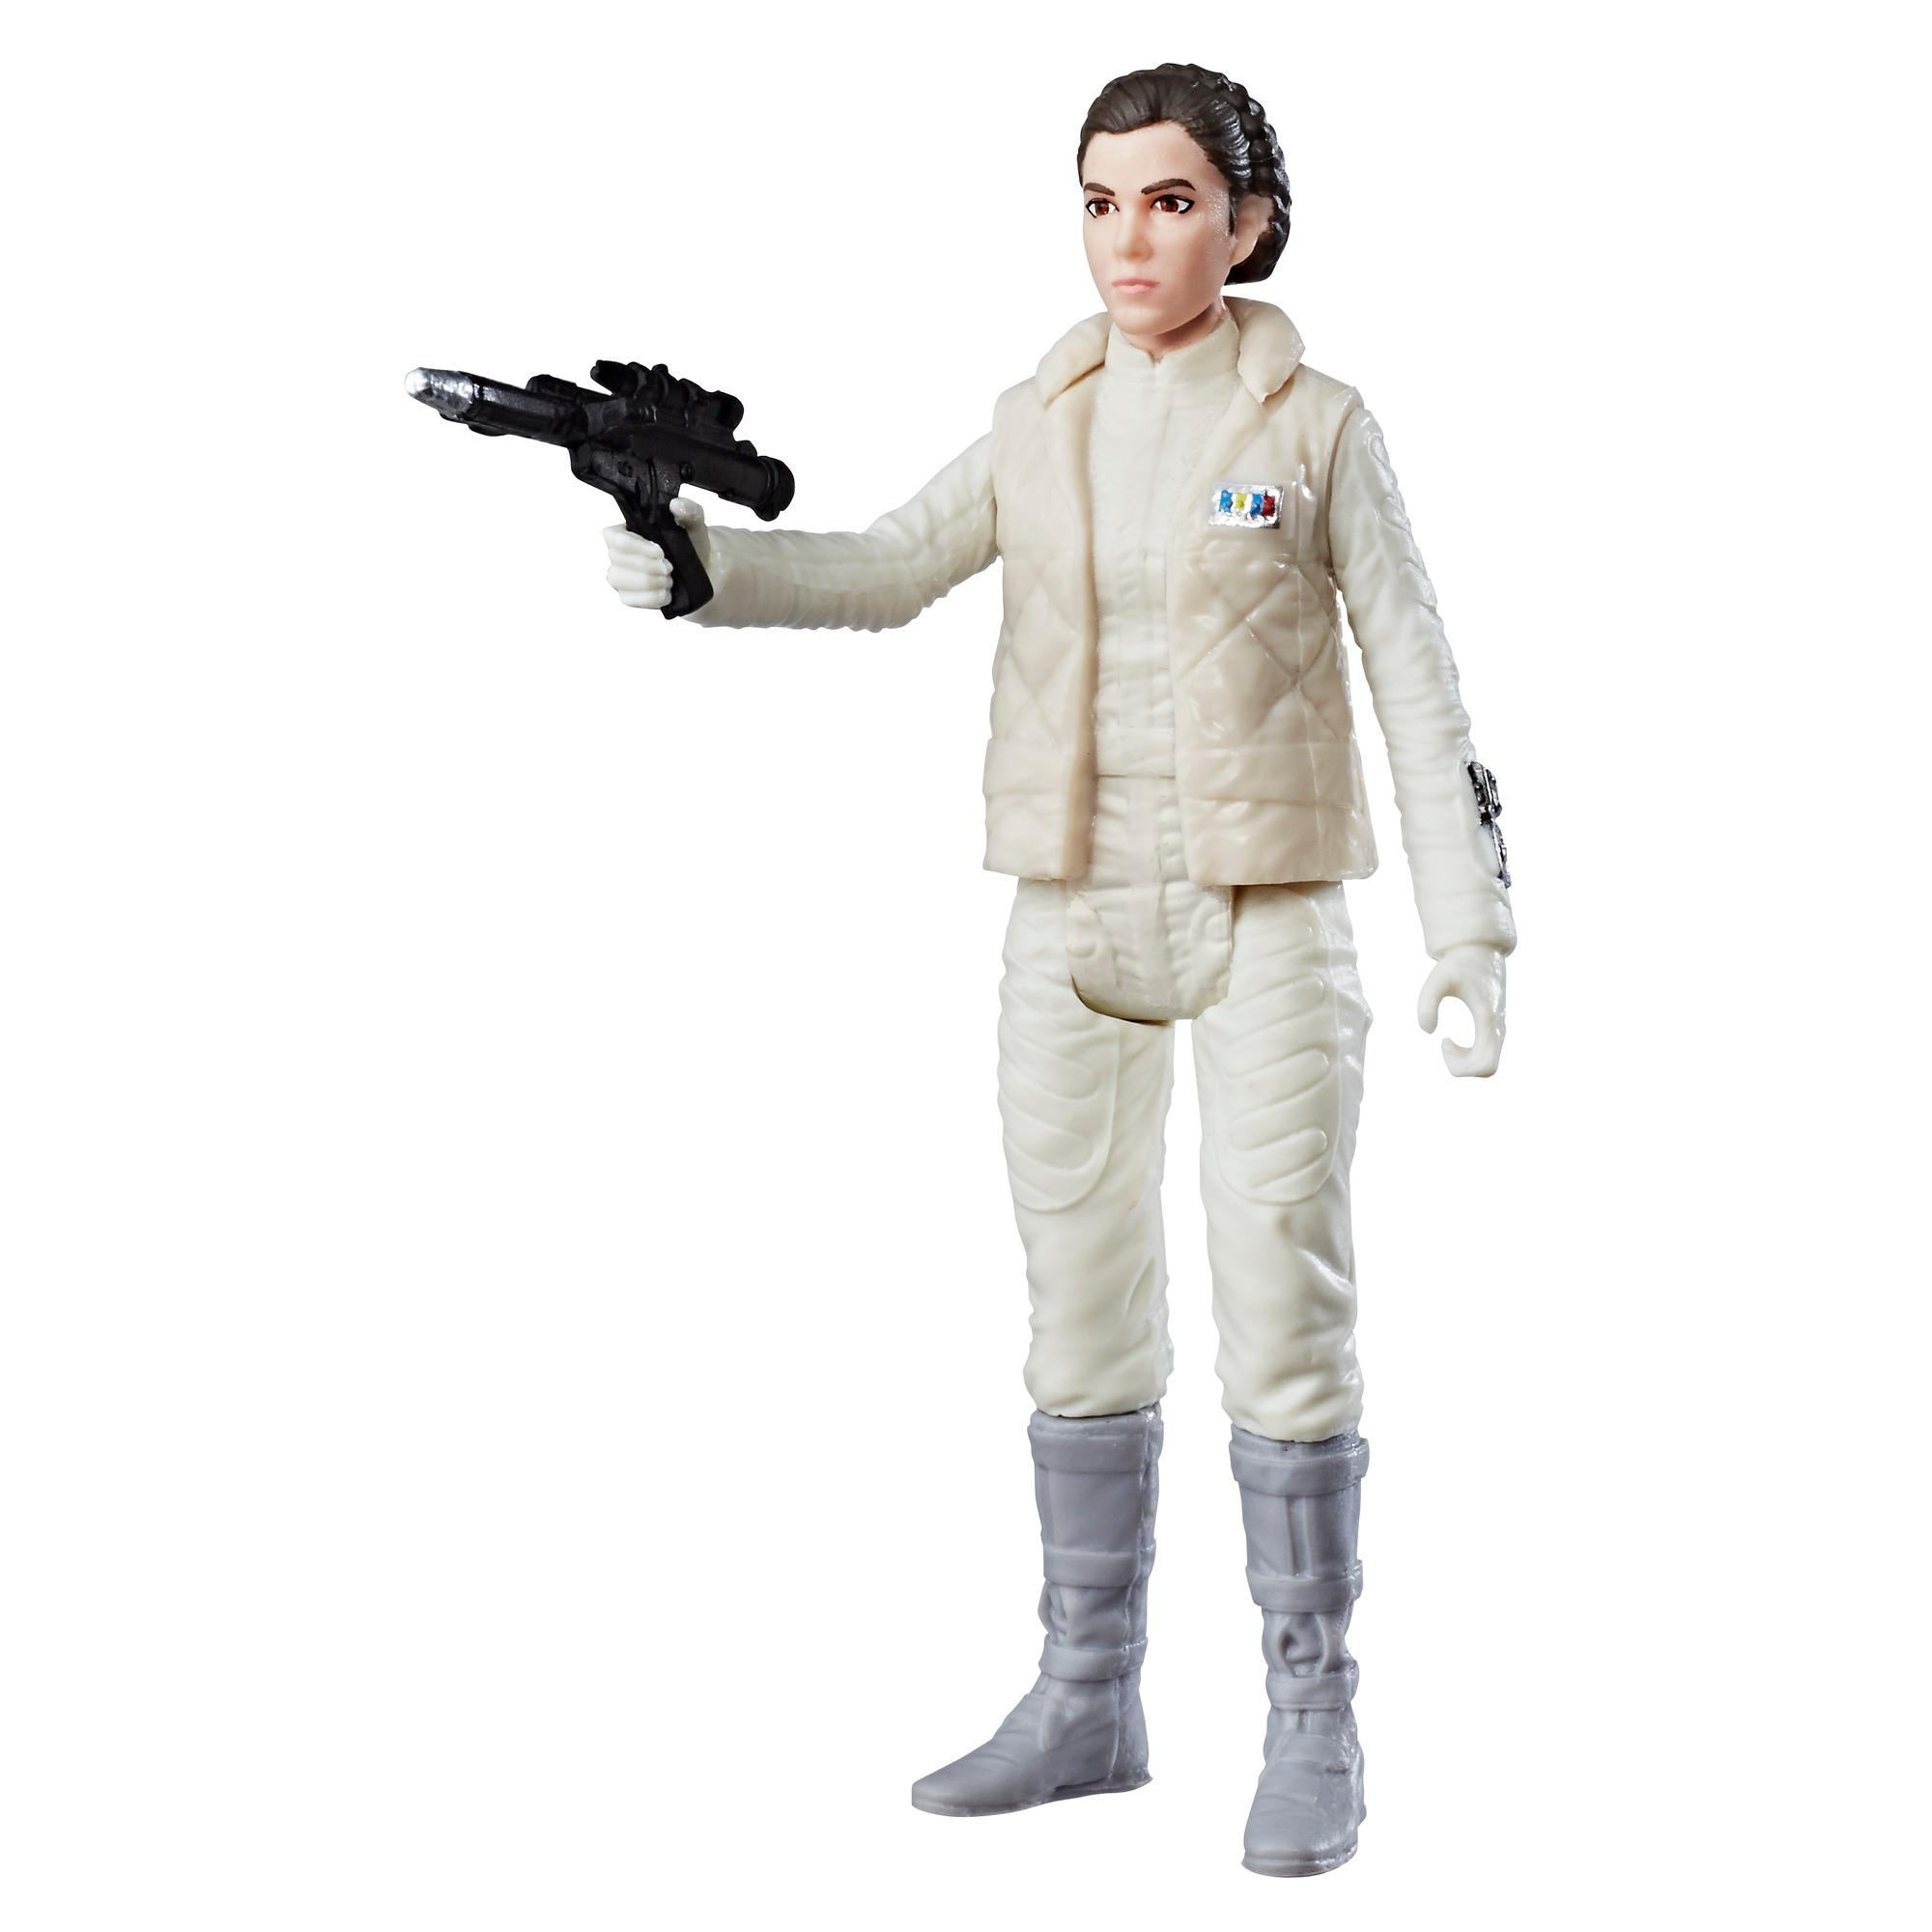 Star Wars Solo Film 3.75 FORCE LINK 2.0 Figur Princess Leia Organa